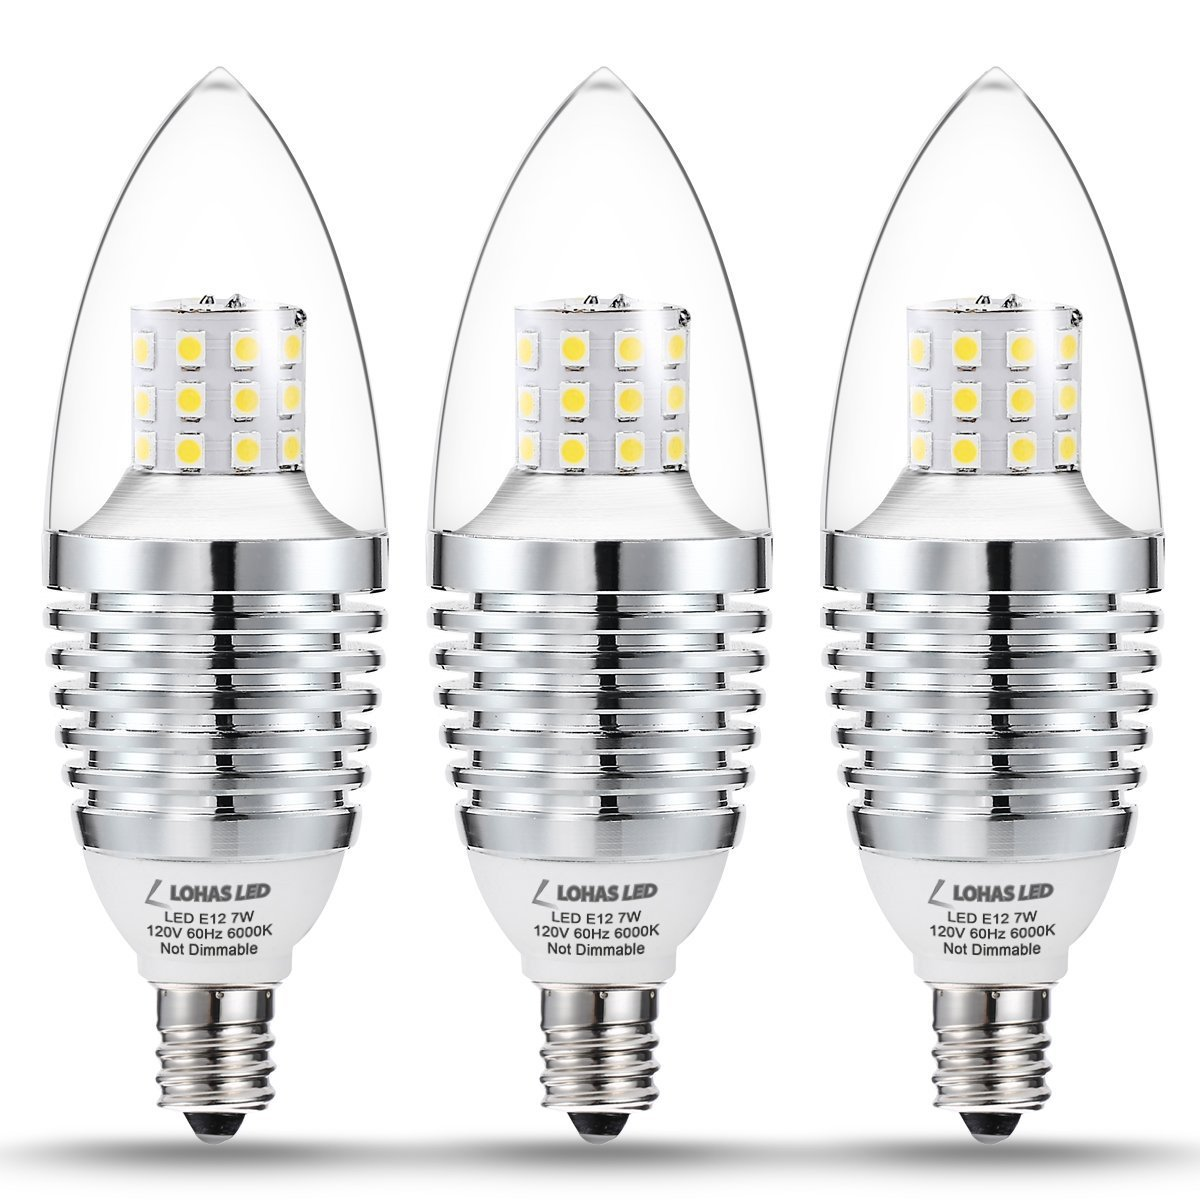 Lohas candelabra led bulb e12 base 65 watt 75 watt halogen bulb lohas candelabra led bulb e12 base 65 watt 75 watt halogen bulb equivalent led 7w candelabra base bulbs daylight 6000k 680 lumens non dimmable aloadofball Choice Image